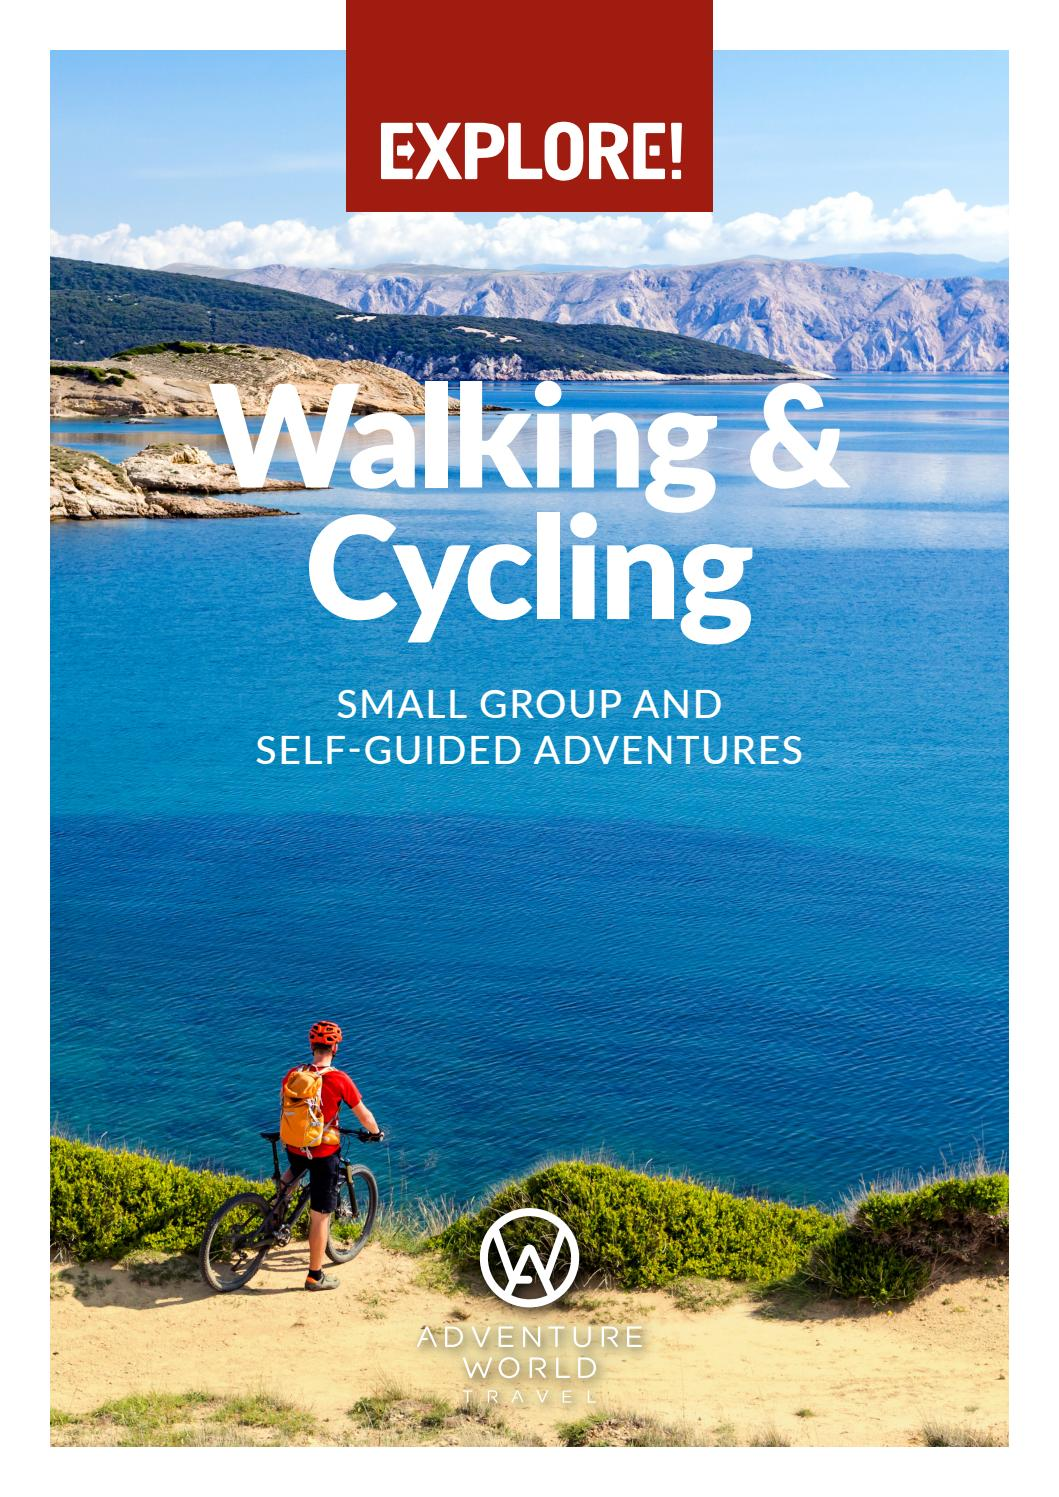 Explore Worldwide Walking & Cycling